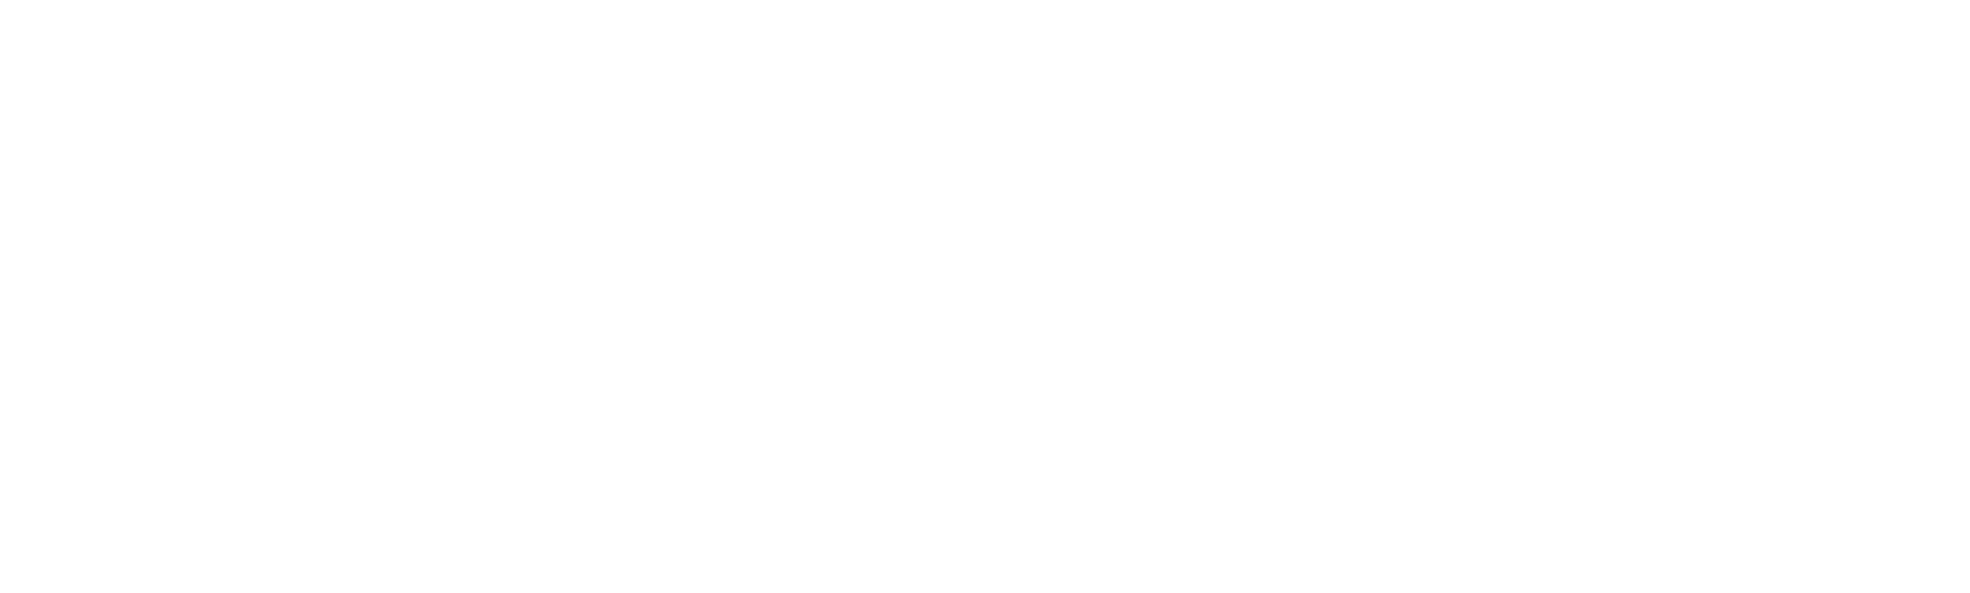 Open-innovation-white-logo